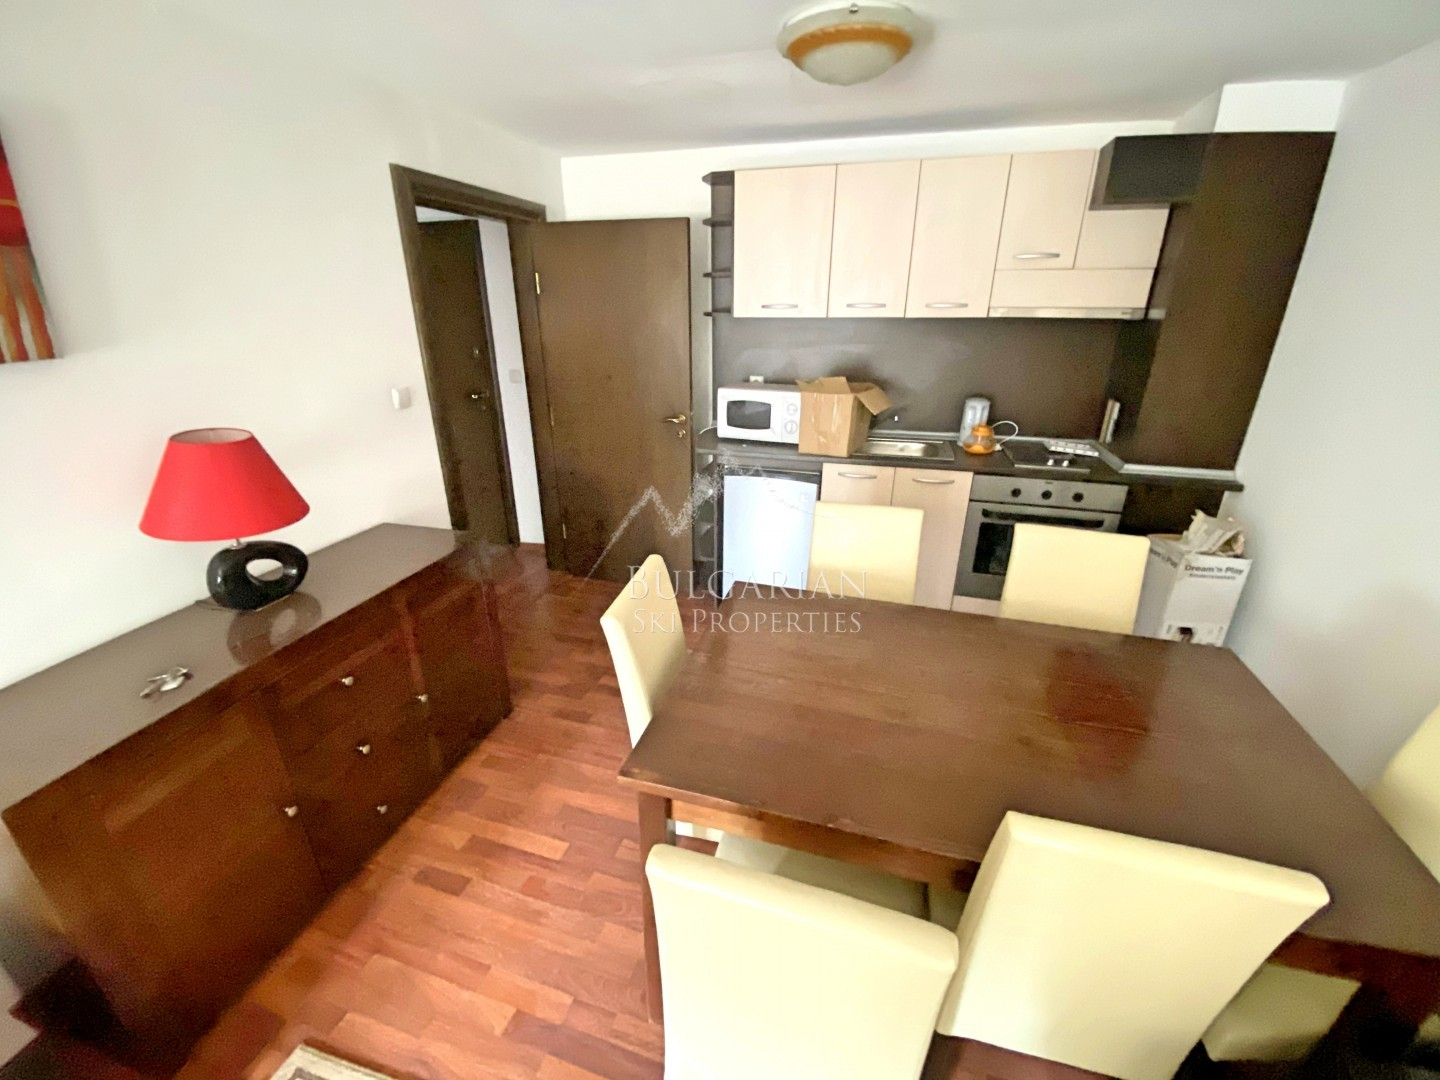 Furnished one-bedroom apartment for sale on bargain price in Bansko